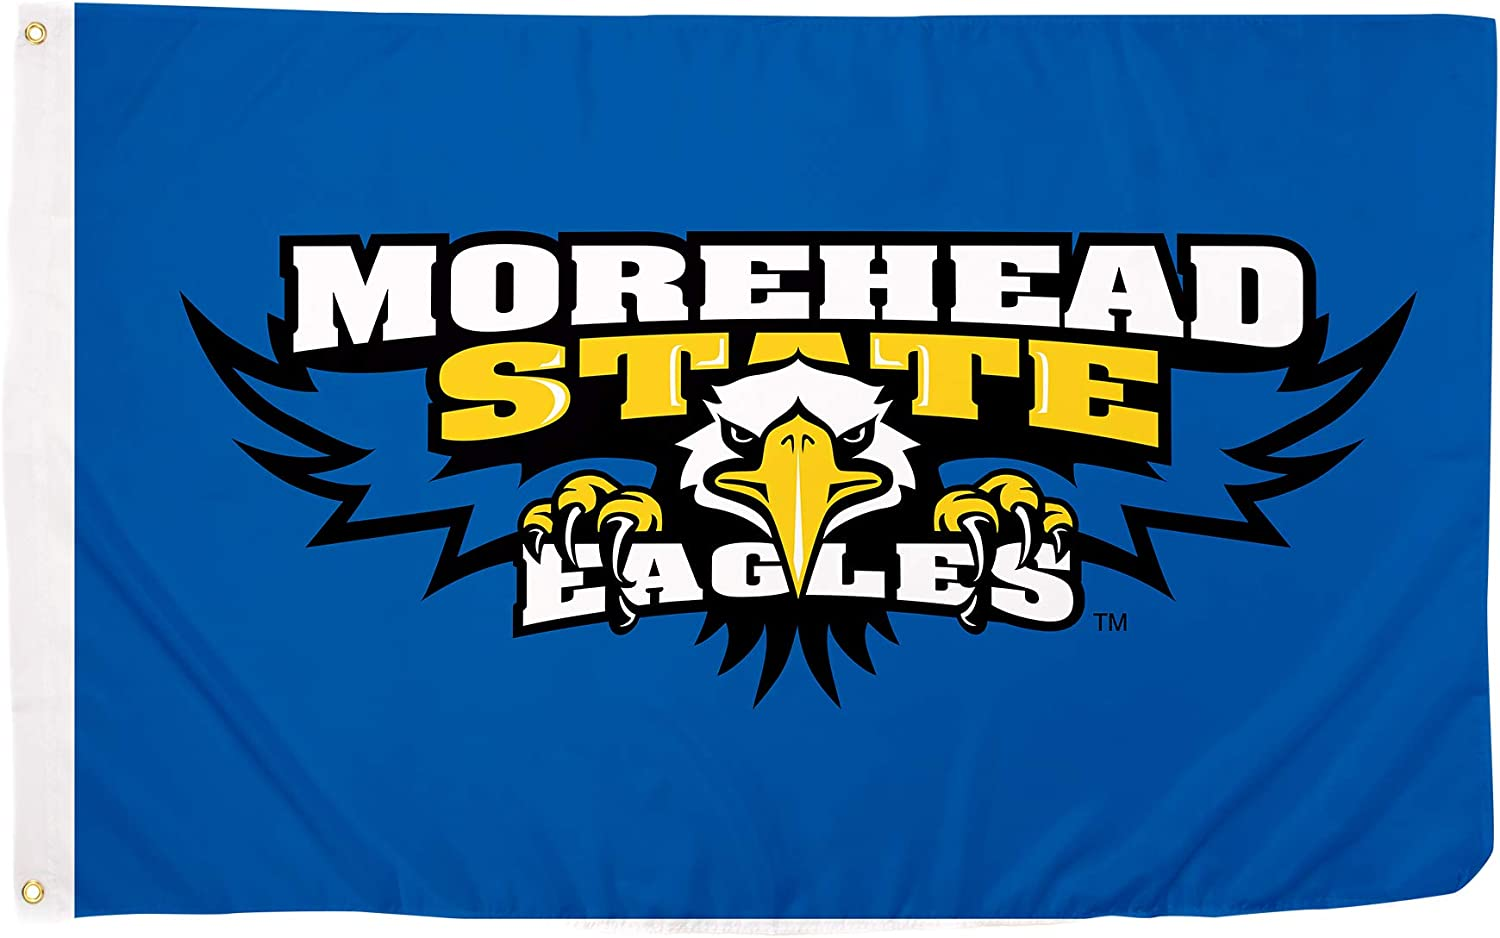 Desert Cactus Morehead State University MSU Eagles NCAA 100% Polyester Indoor Outdoor 3 feet x 5 feet Flag (Morehead State University)